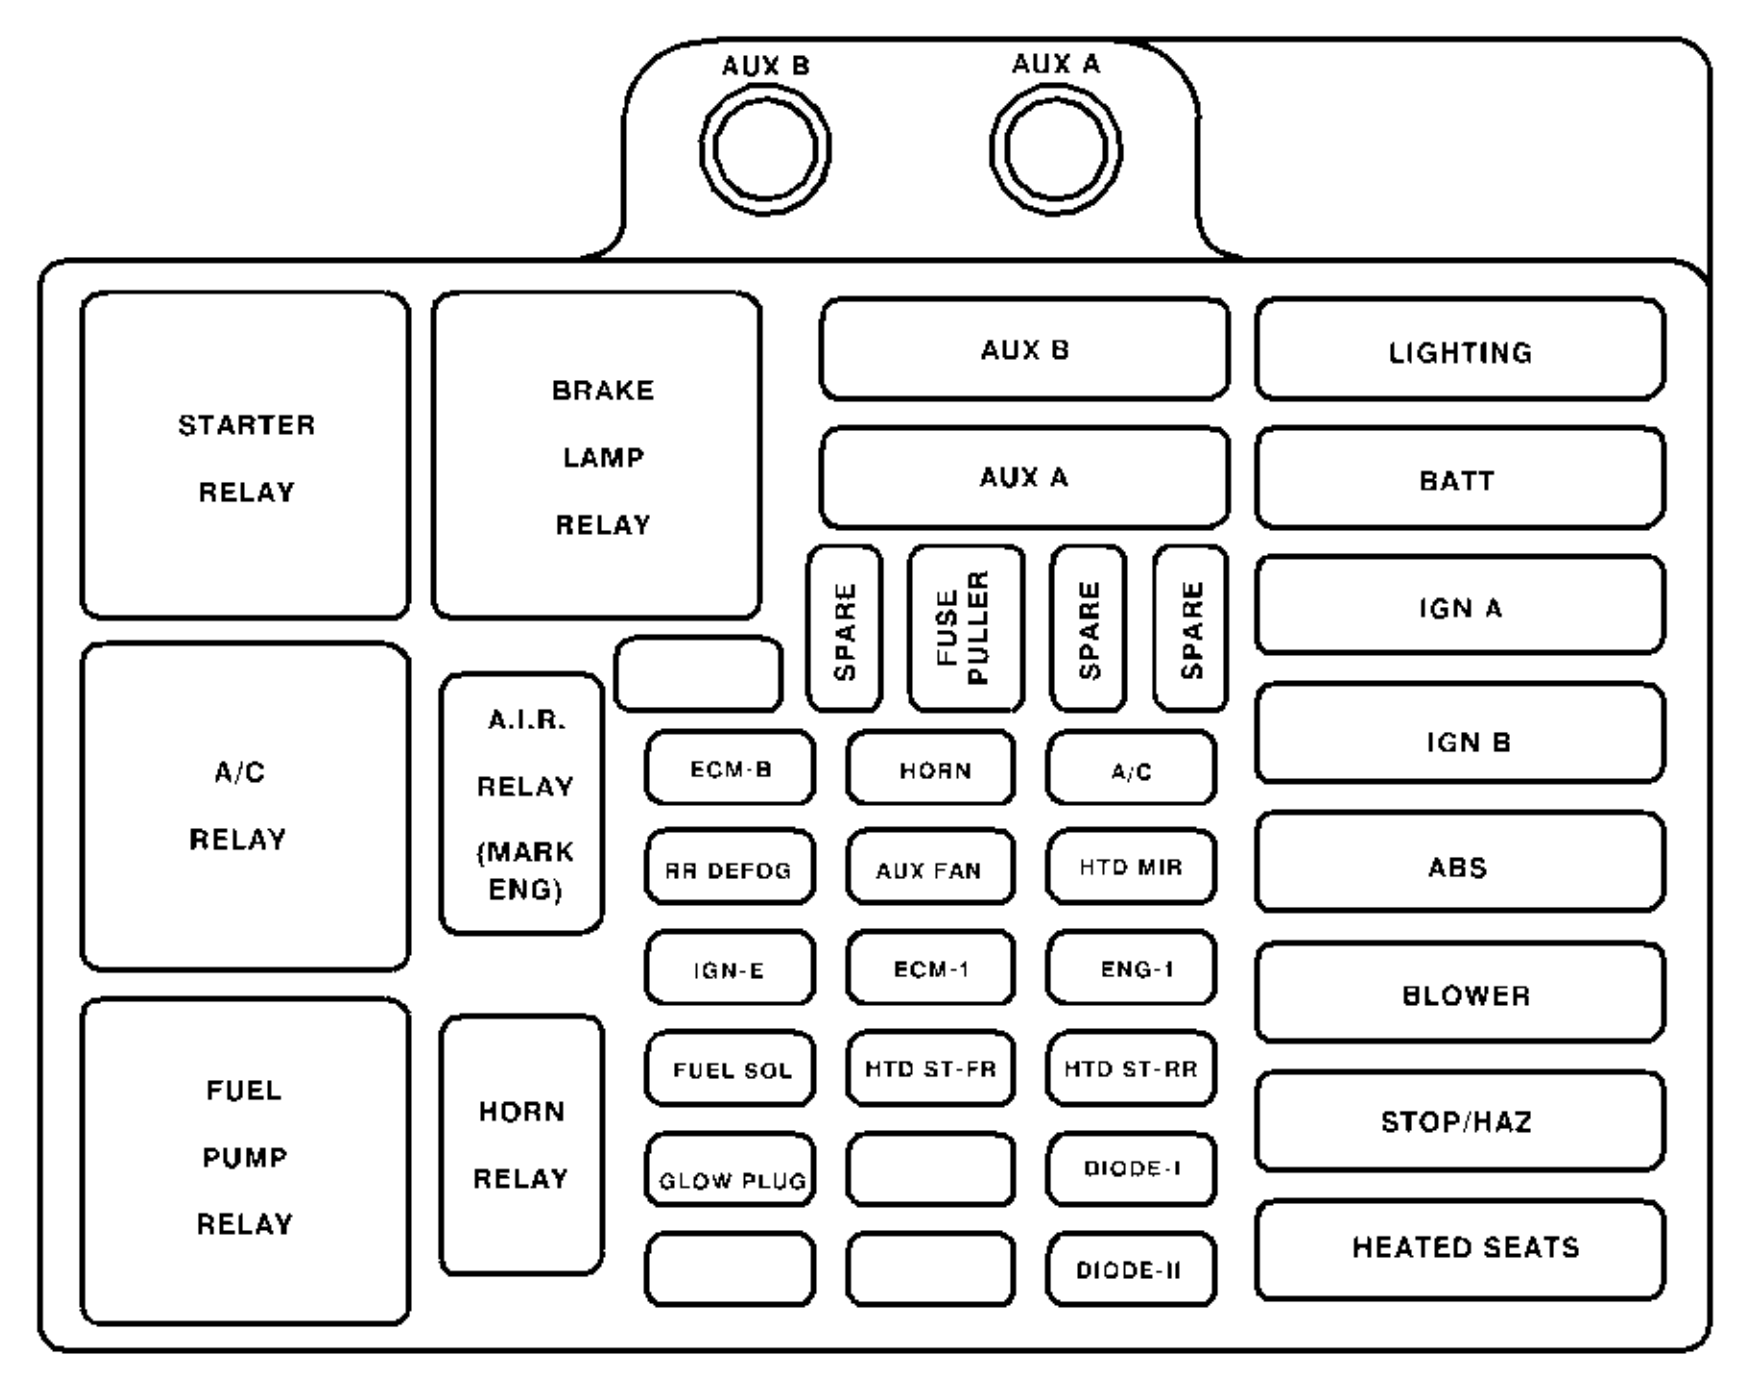 Chevy Silverado Fuse Box Diagram